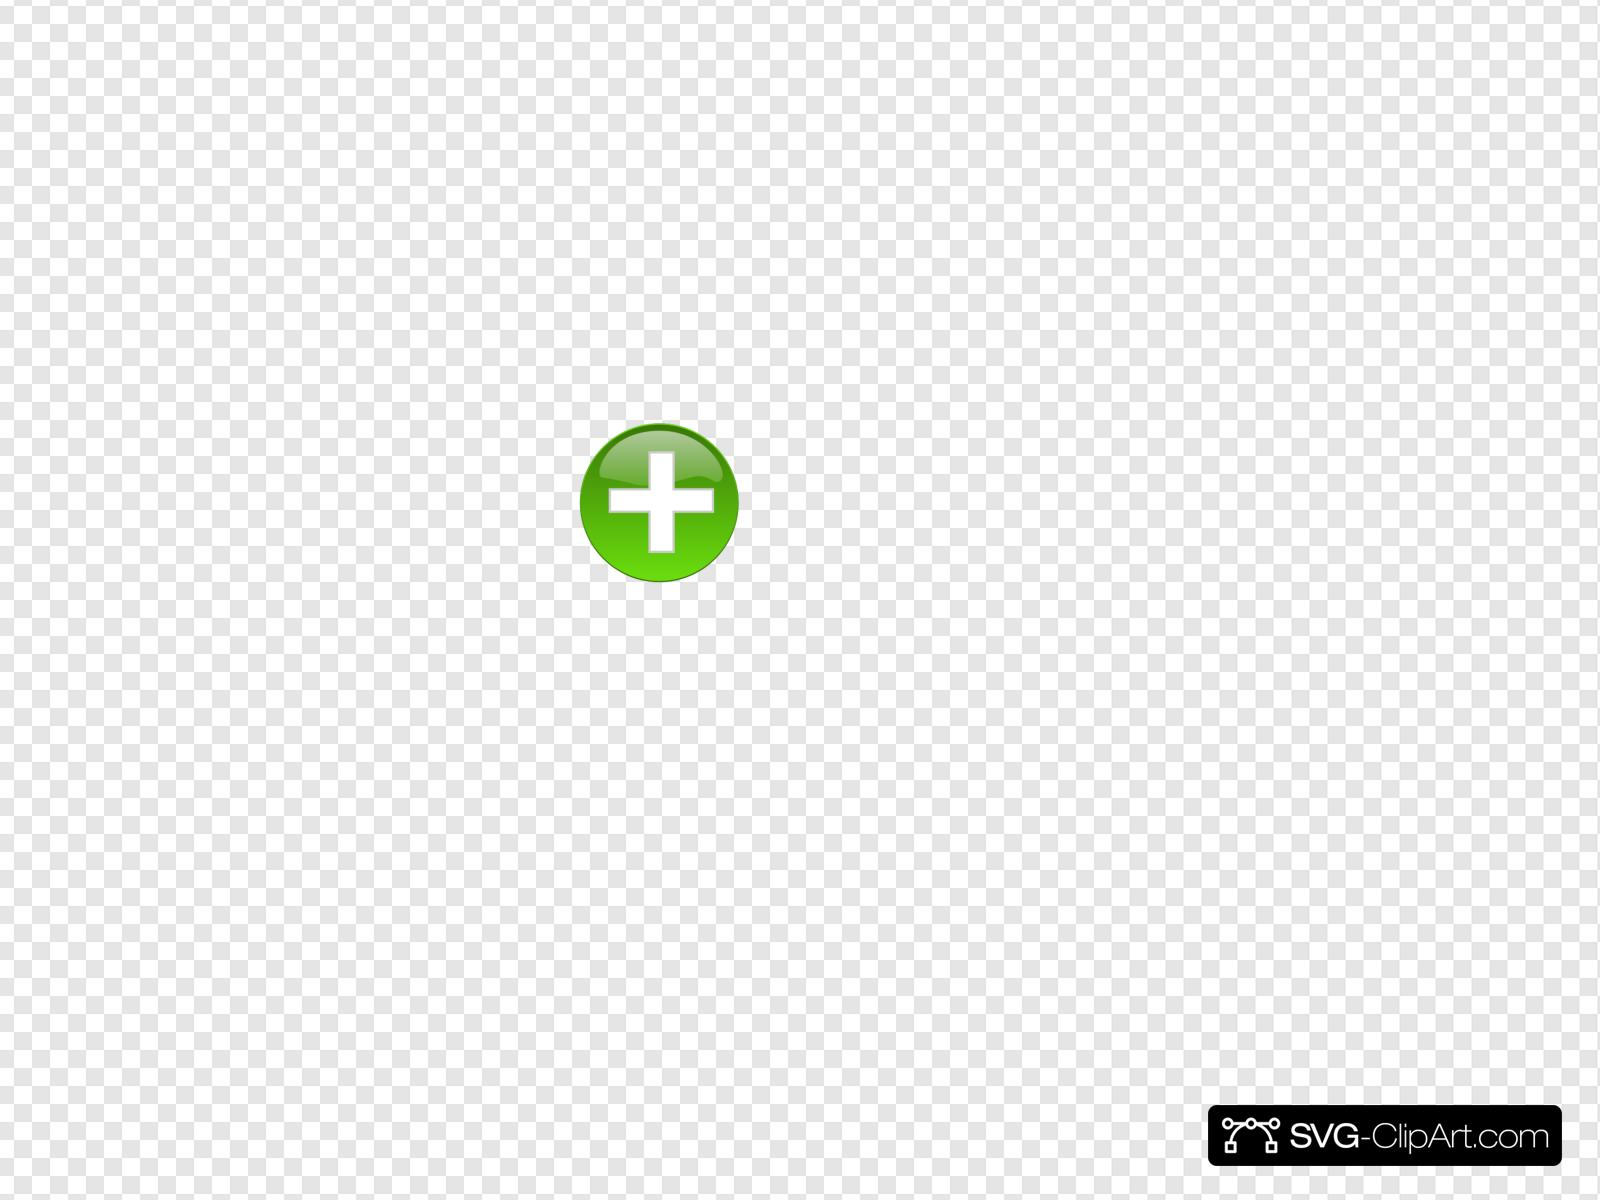 Medical Cross Button Clip art, Icon and SVG.